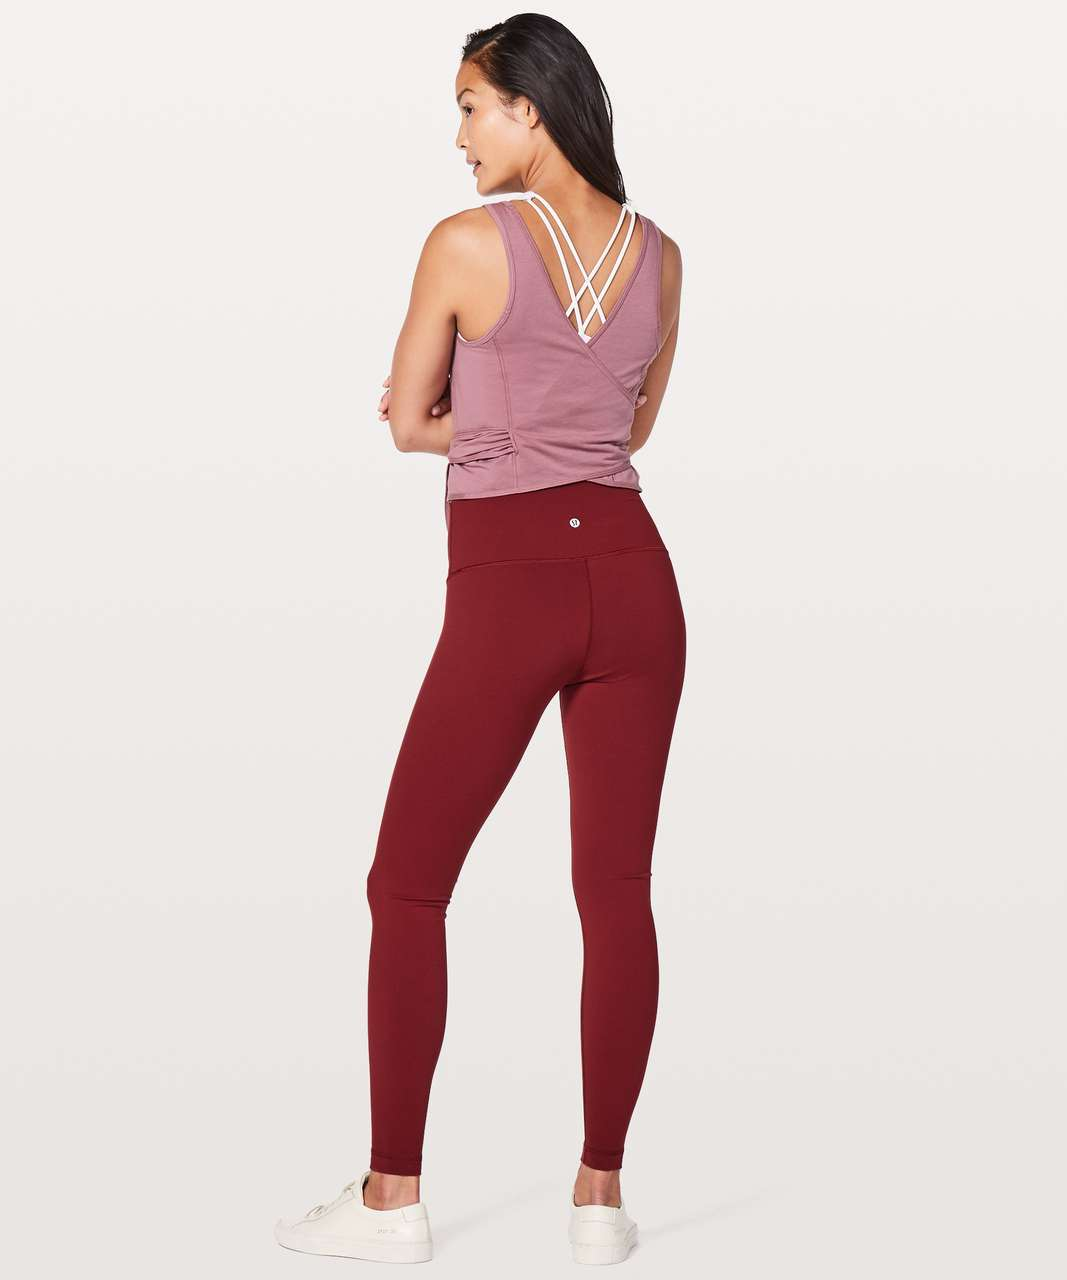 Lululemon Its A Tie Tank - Figue